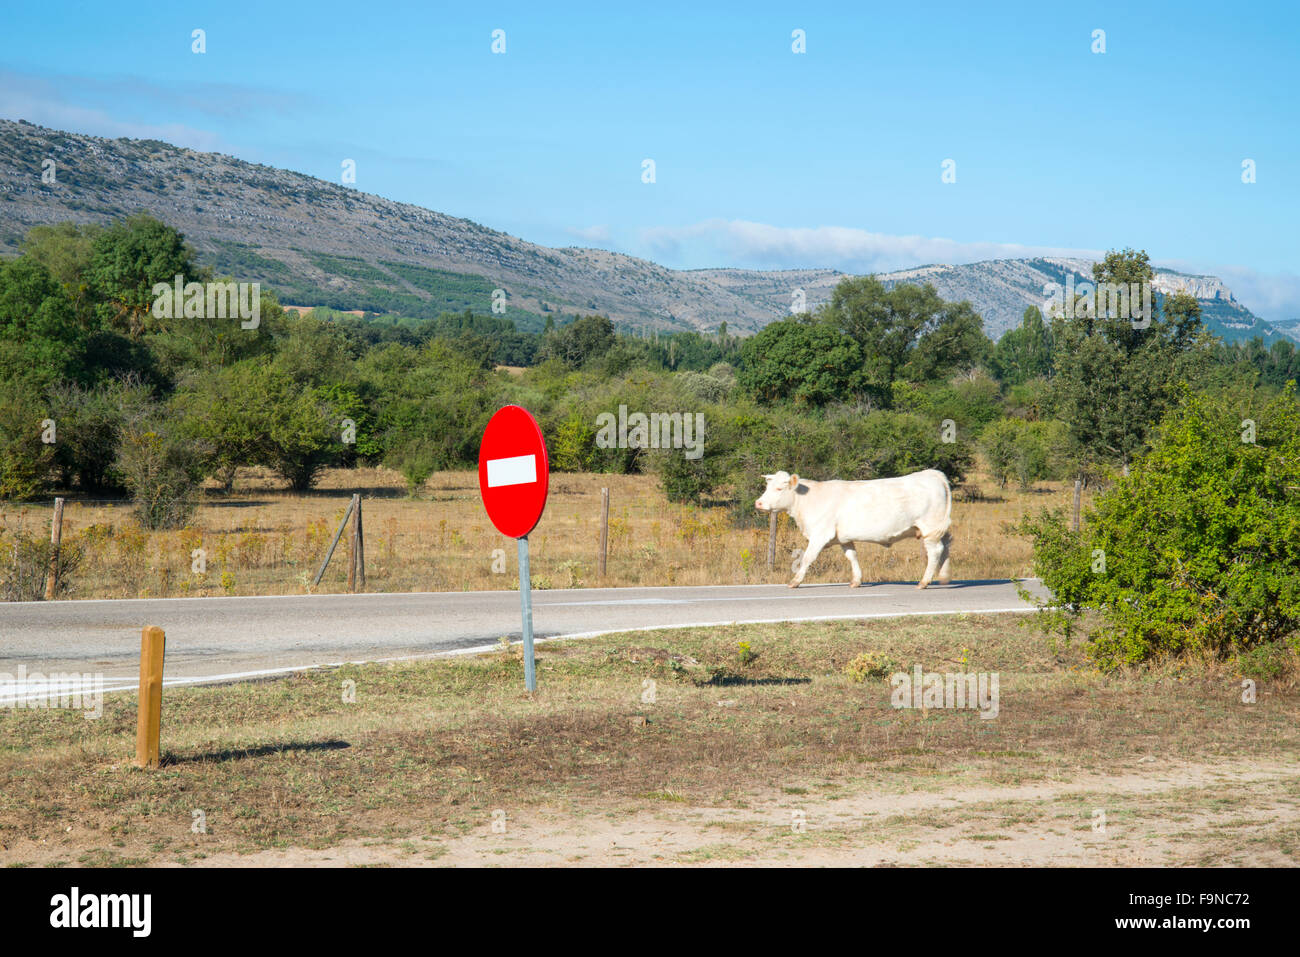 Cow walking along a road and traffic sign. Monte Valonsadero, Soria, Spain. Stock Photo